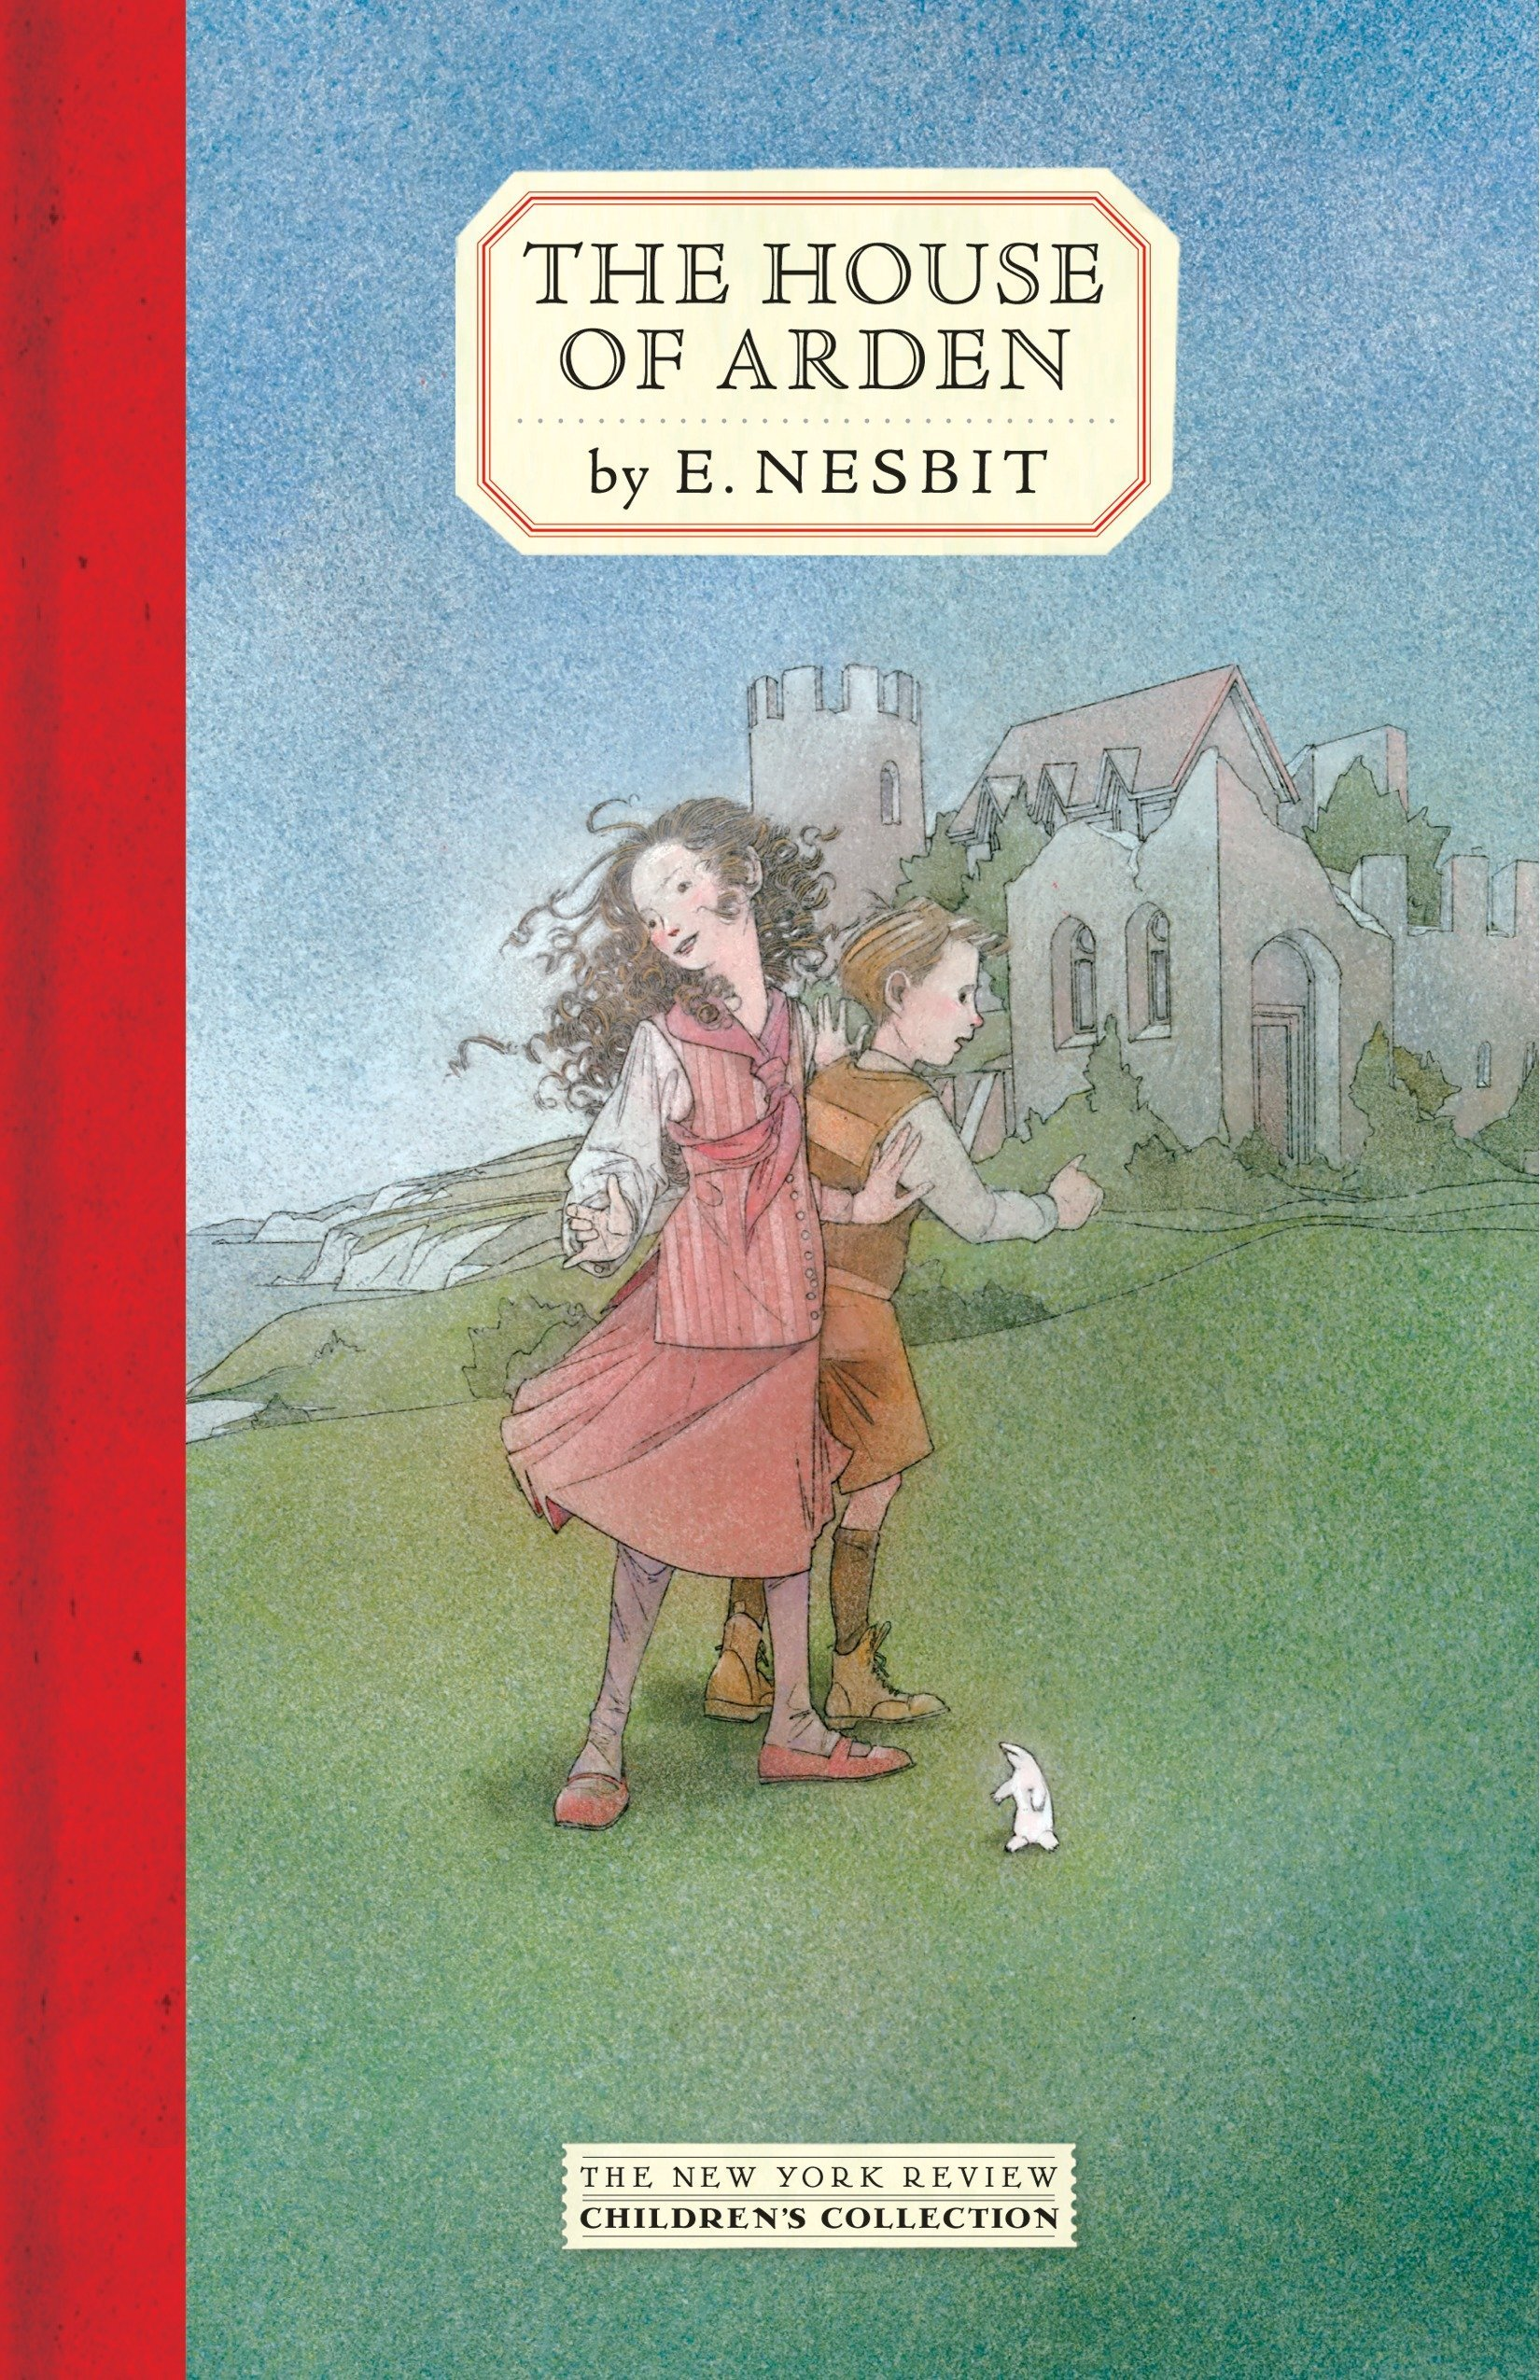 The House Of Arden New York Review Childrens Collection: Amazon.es: E. Nesbit: Libros en idiomas extranjeros